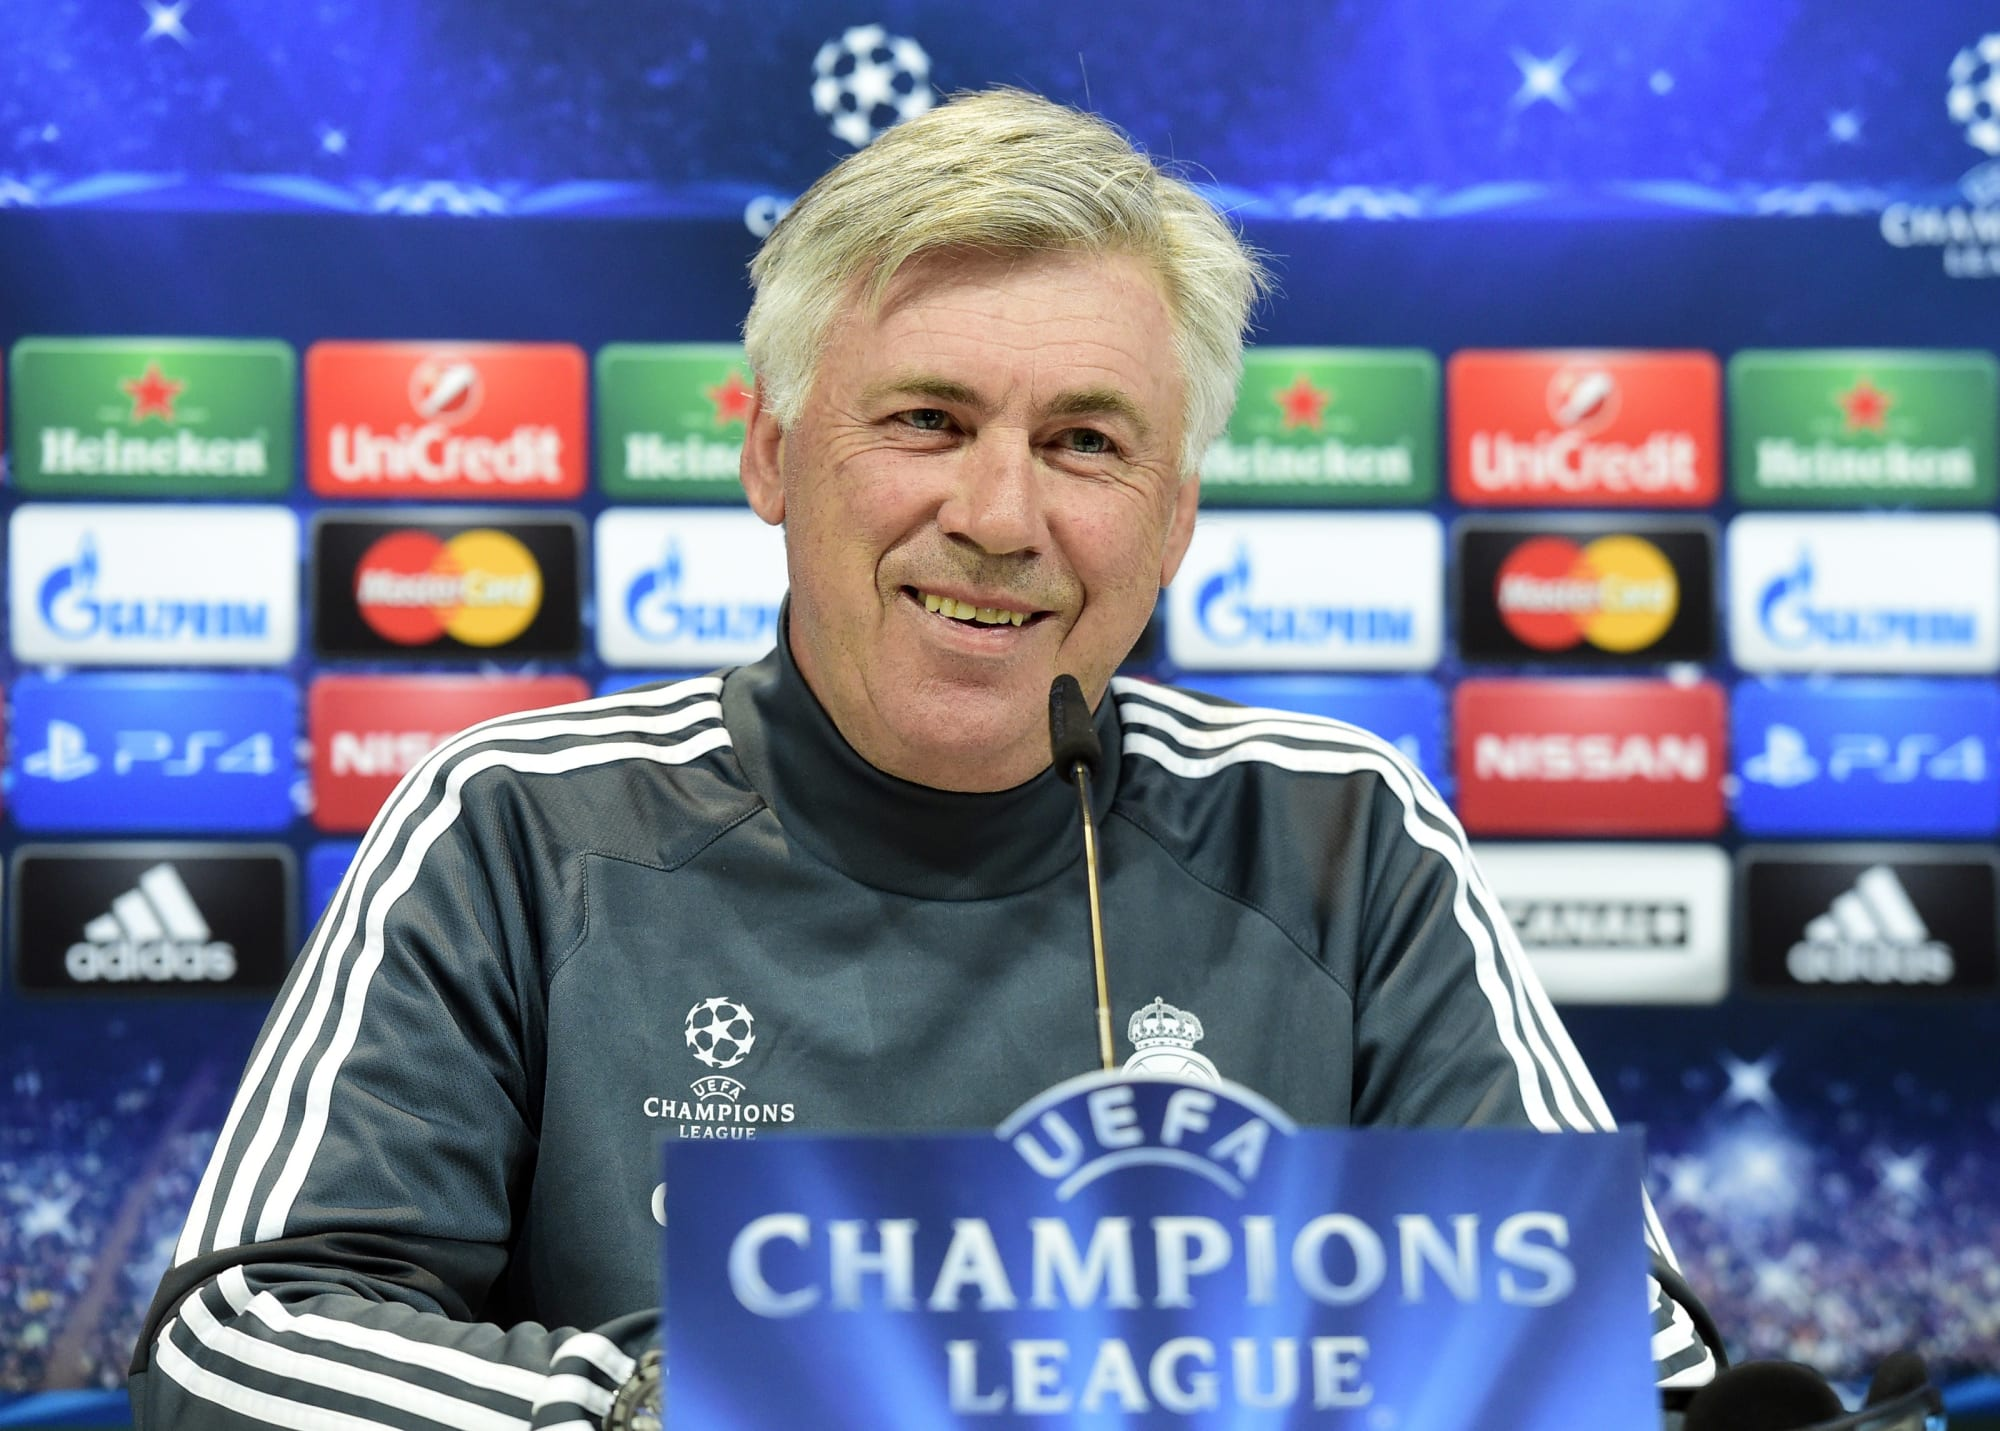 Real Madrid: The three prospects Carlo Ancelotti wants to use